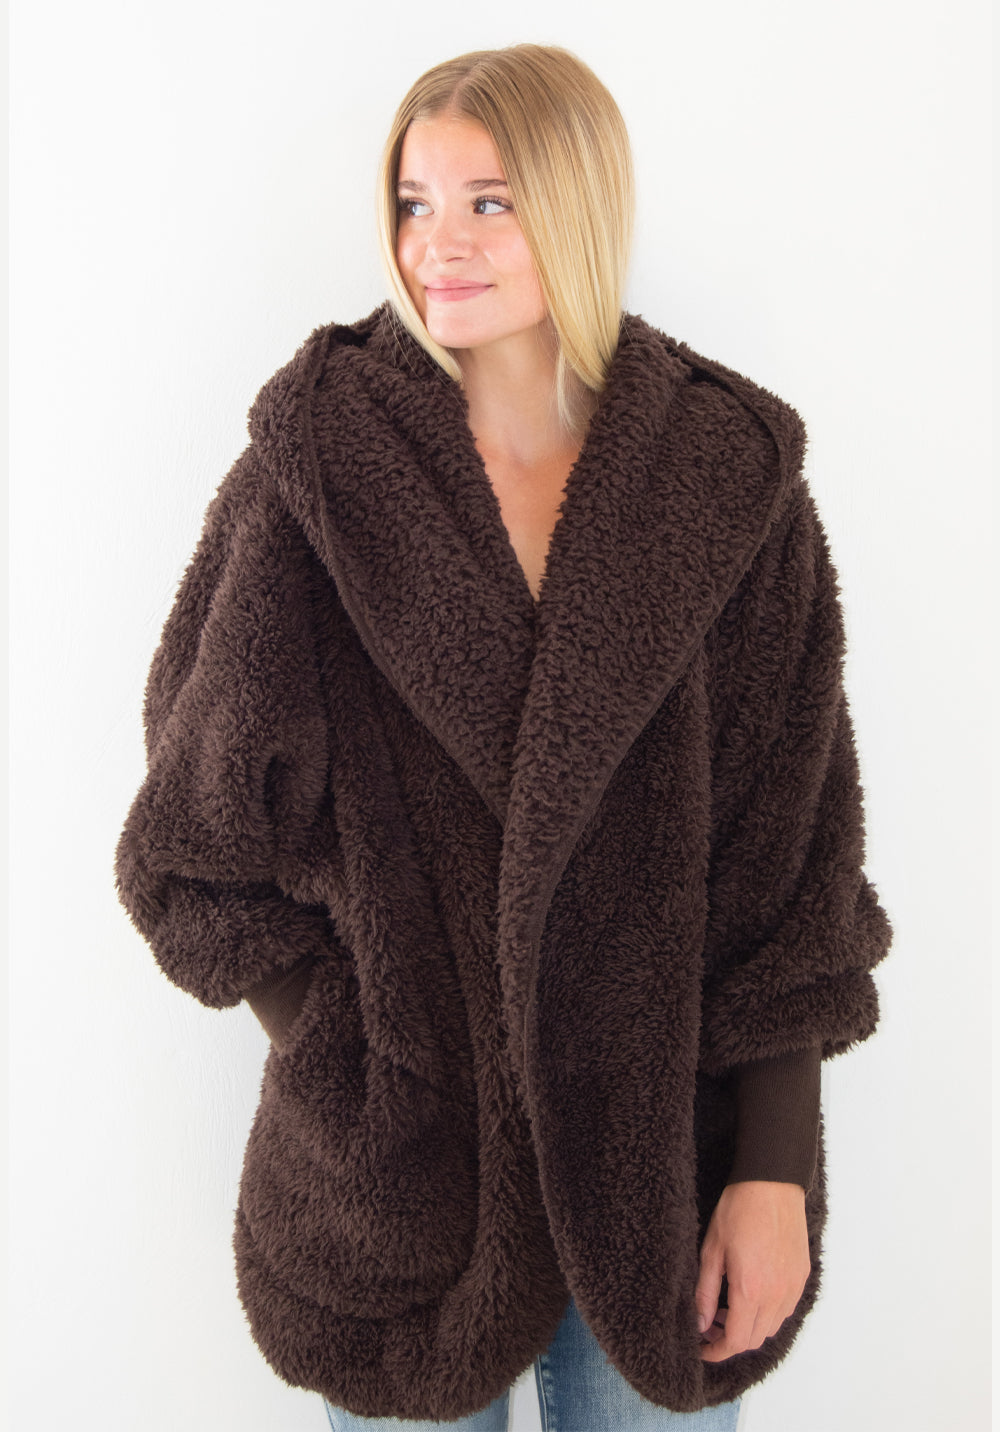 NORDIC BEACH WRAP - DARK CHOCOLATE